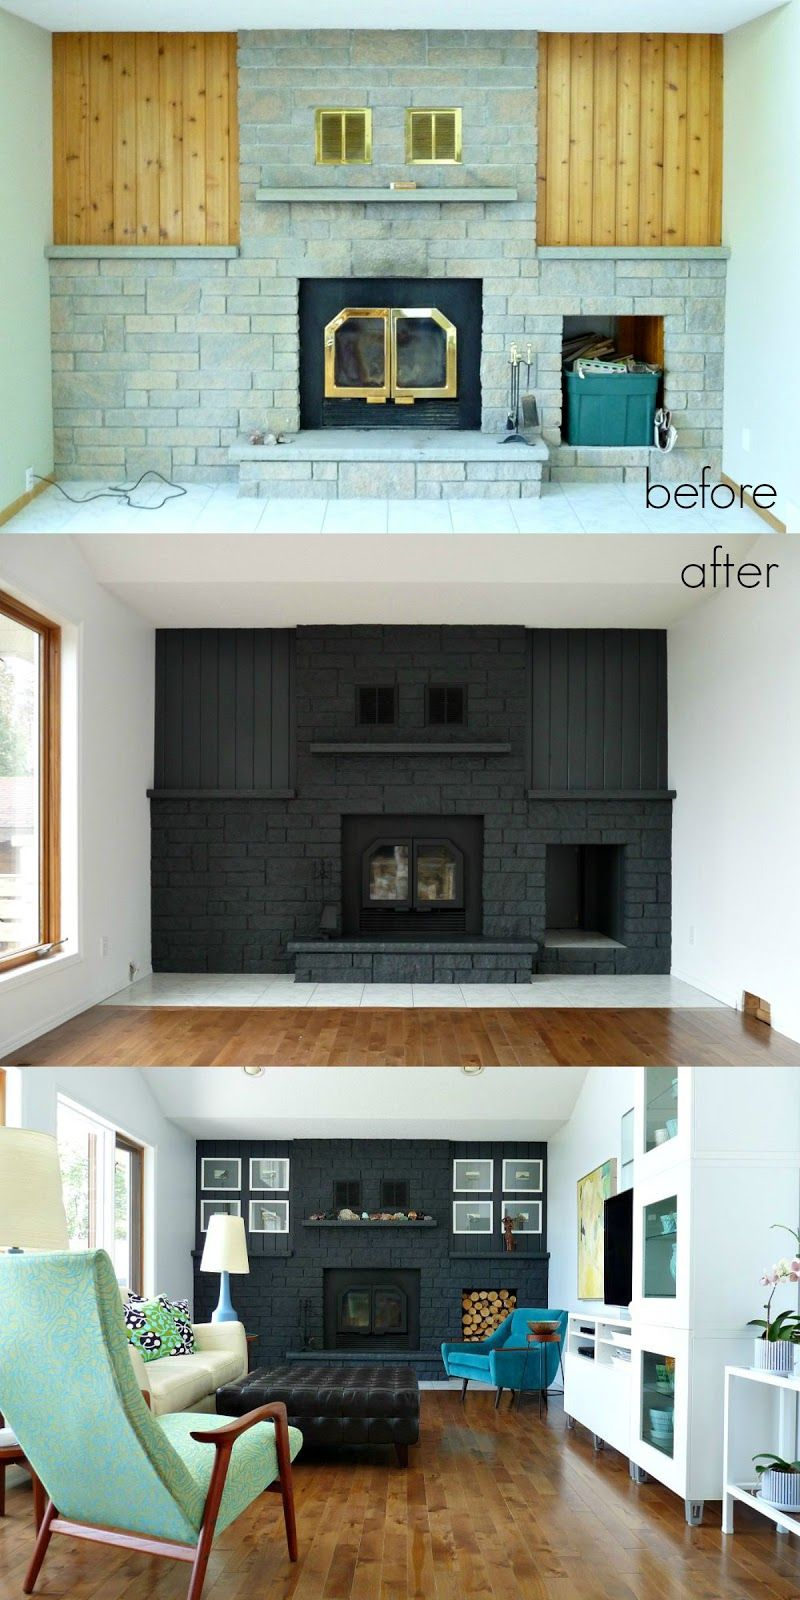 Dans le Lakehouse Fireplace Before + After Fireplace